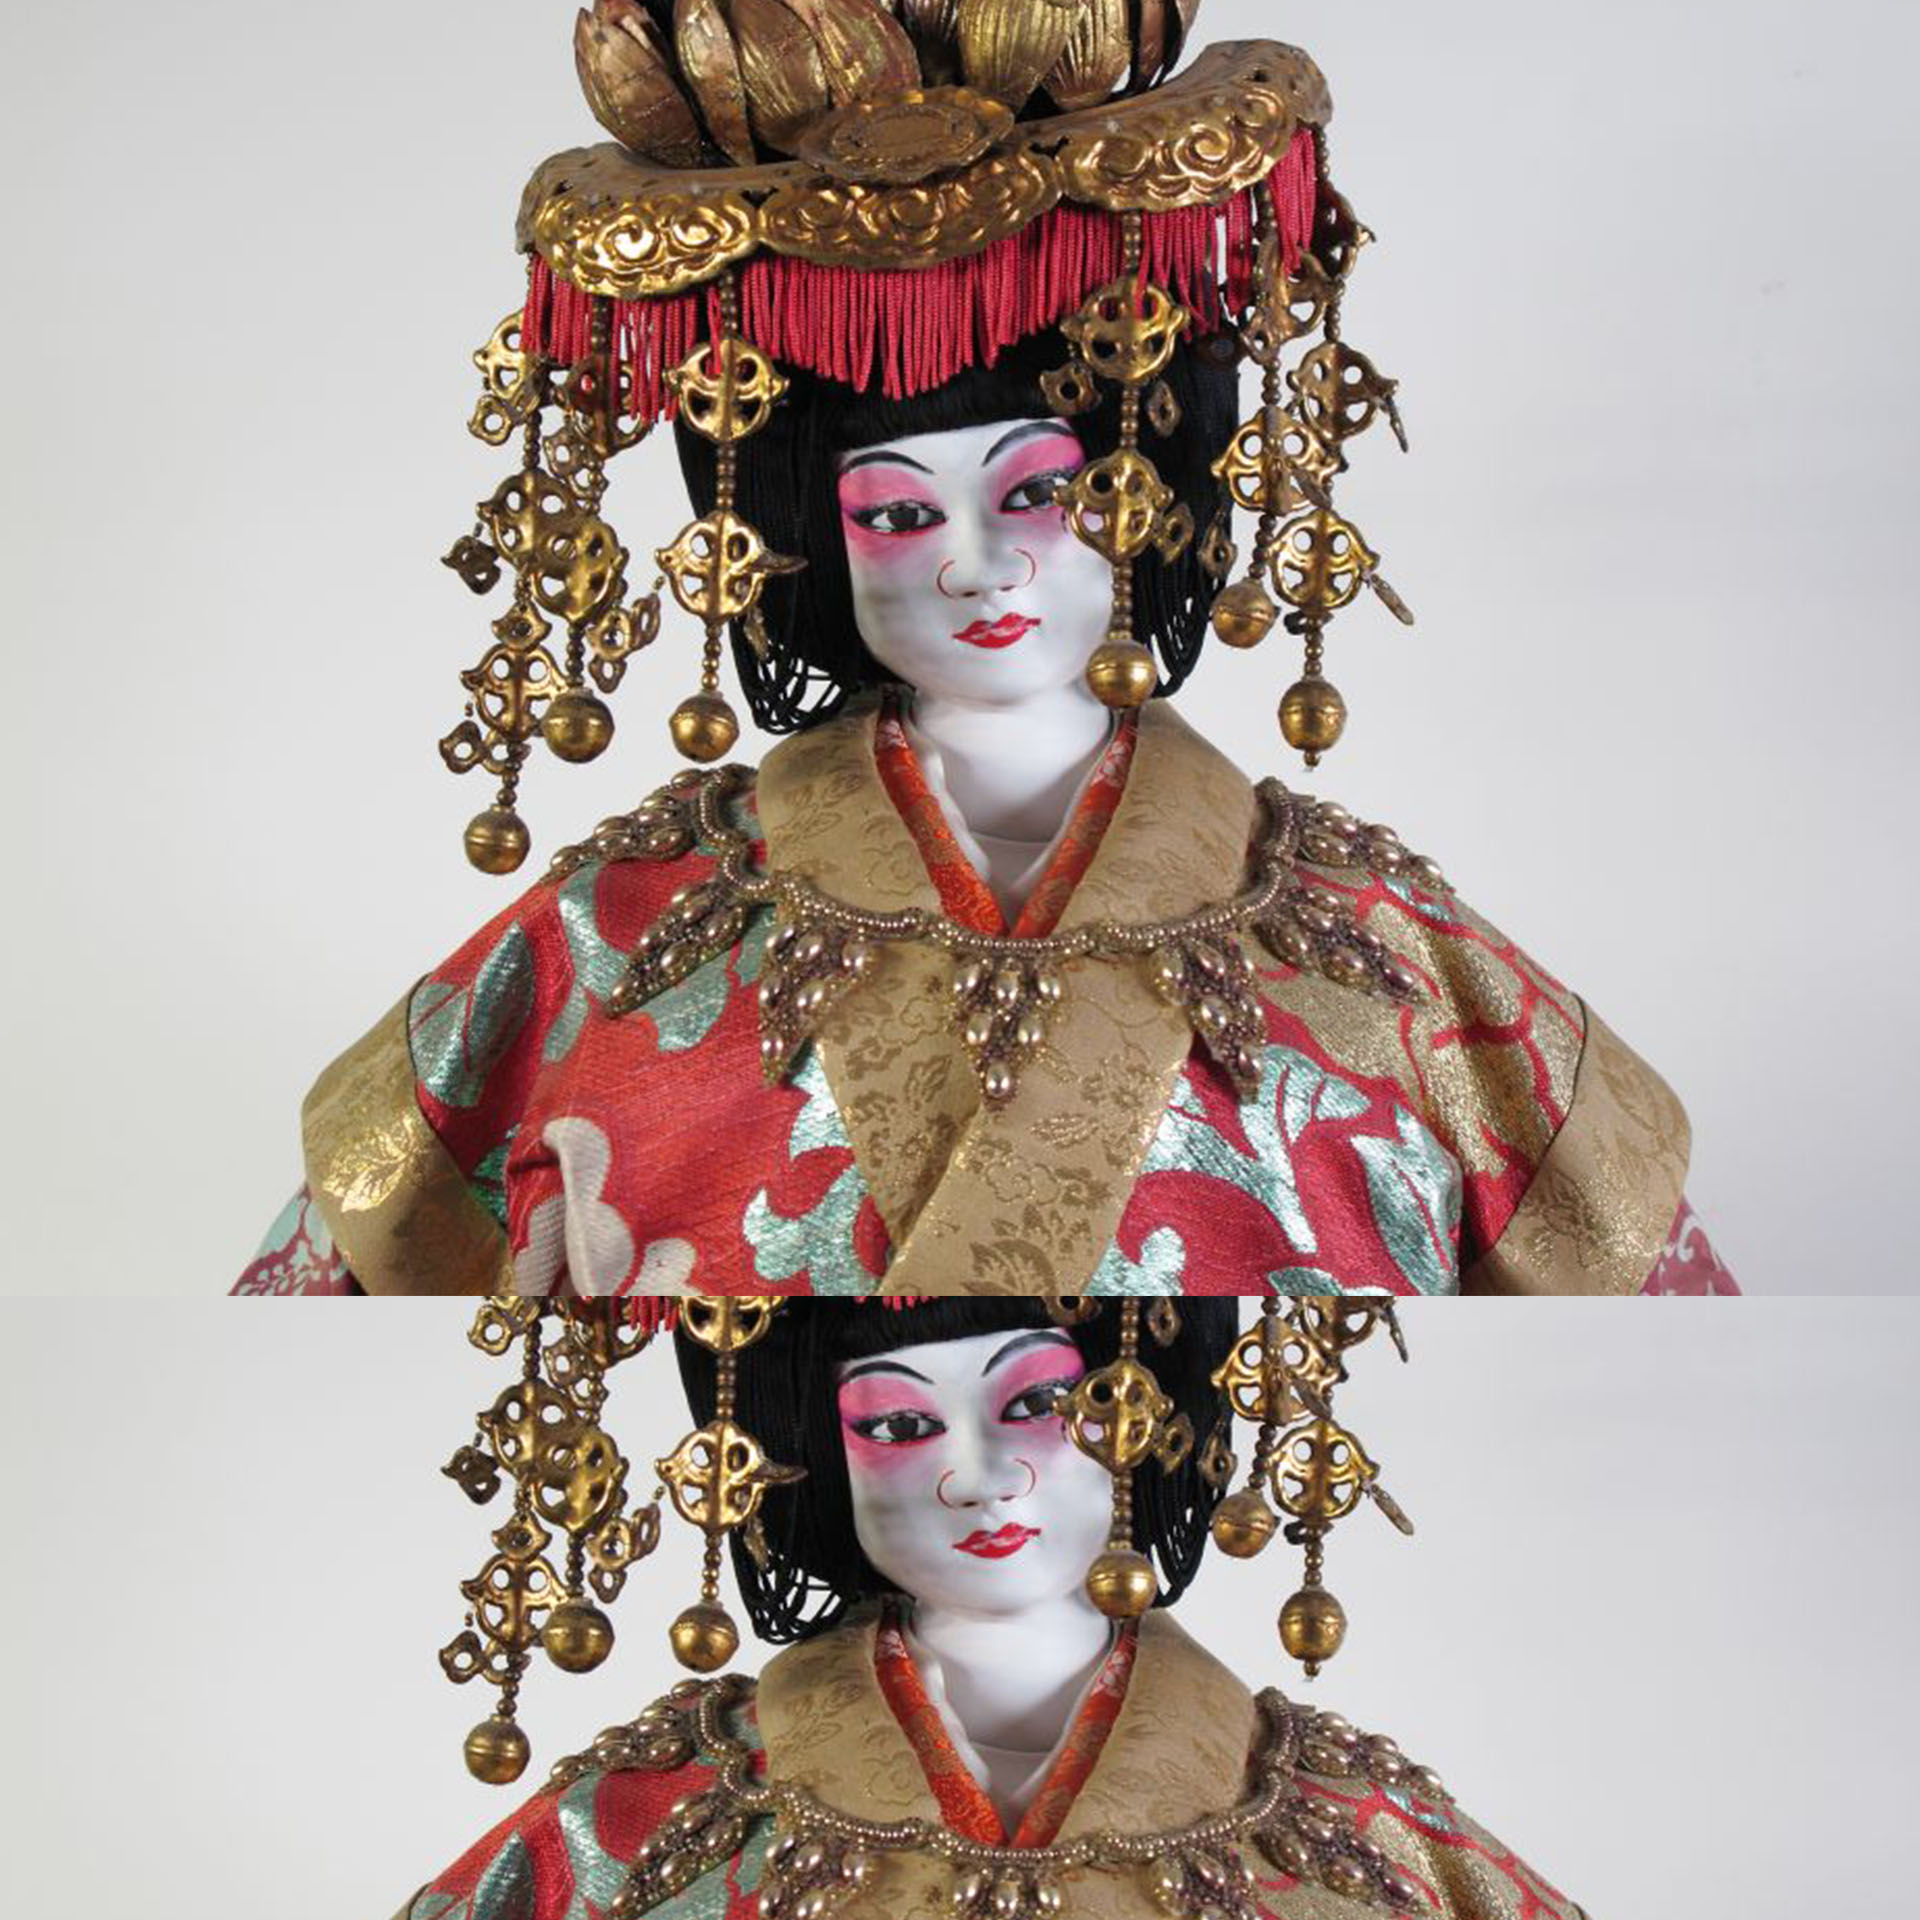 A puppet by Kihachirō Kawamoto acquired from Atelier Frédéric Back